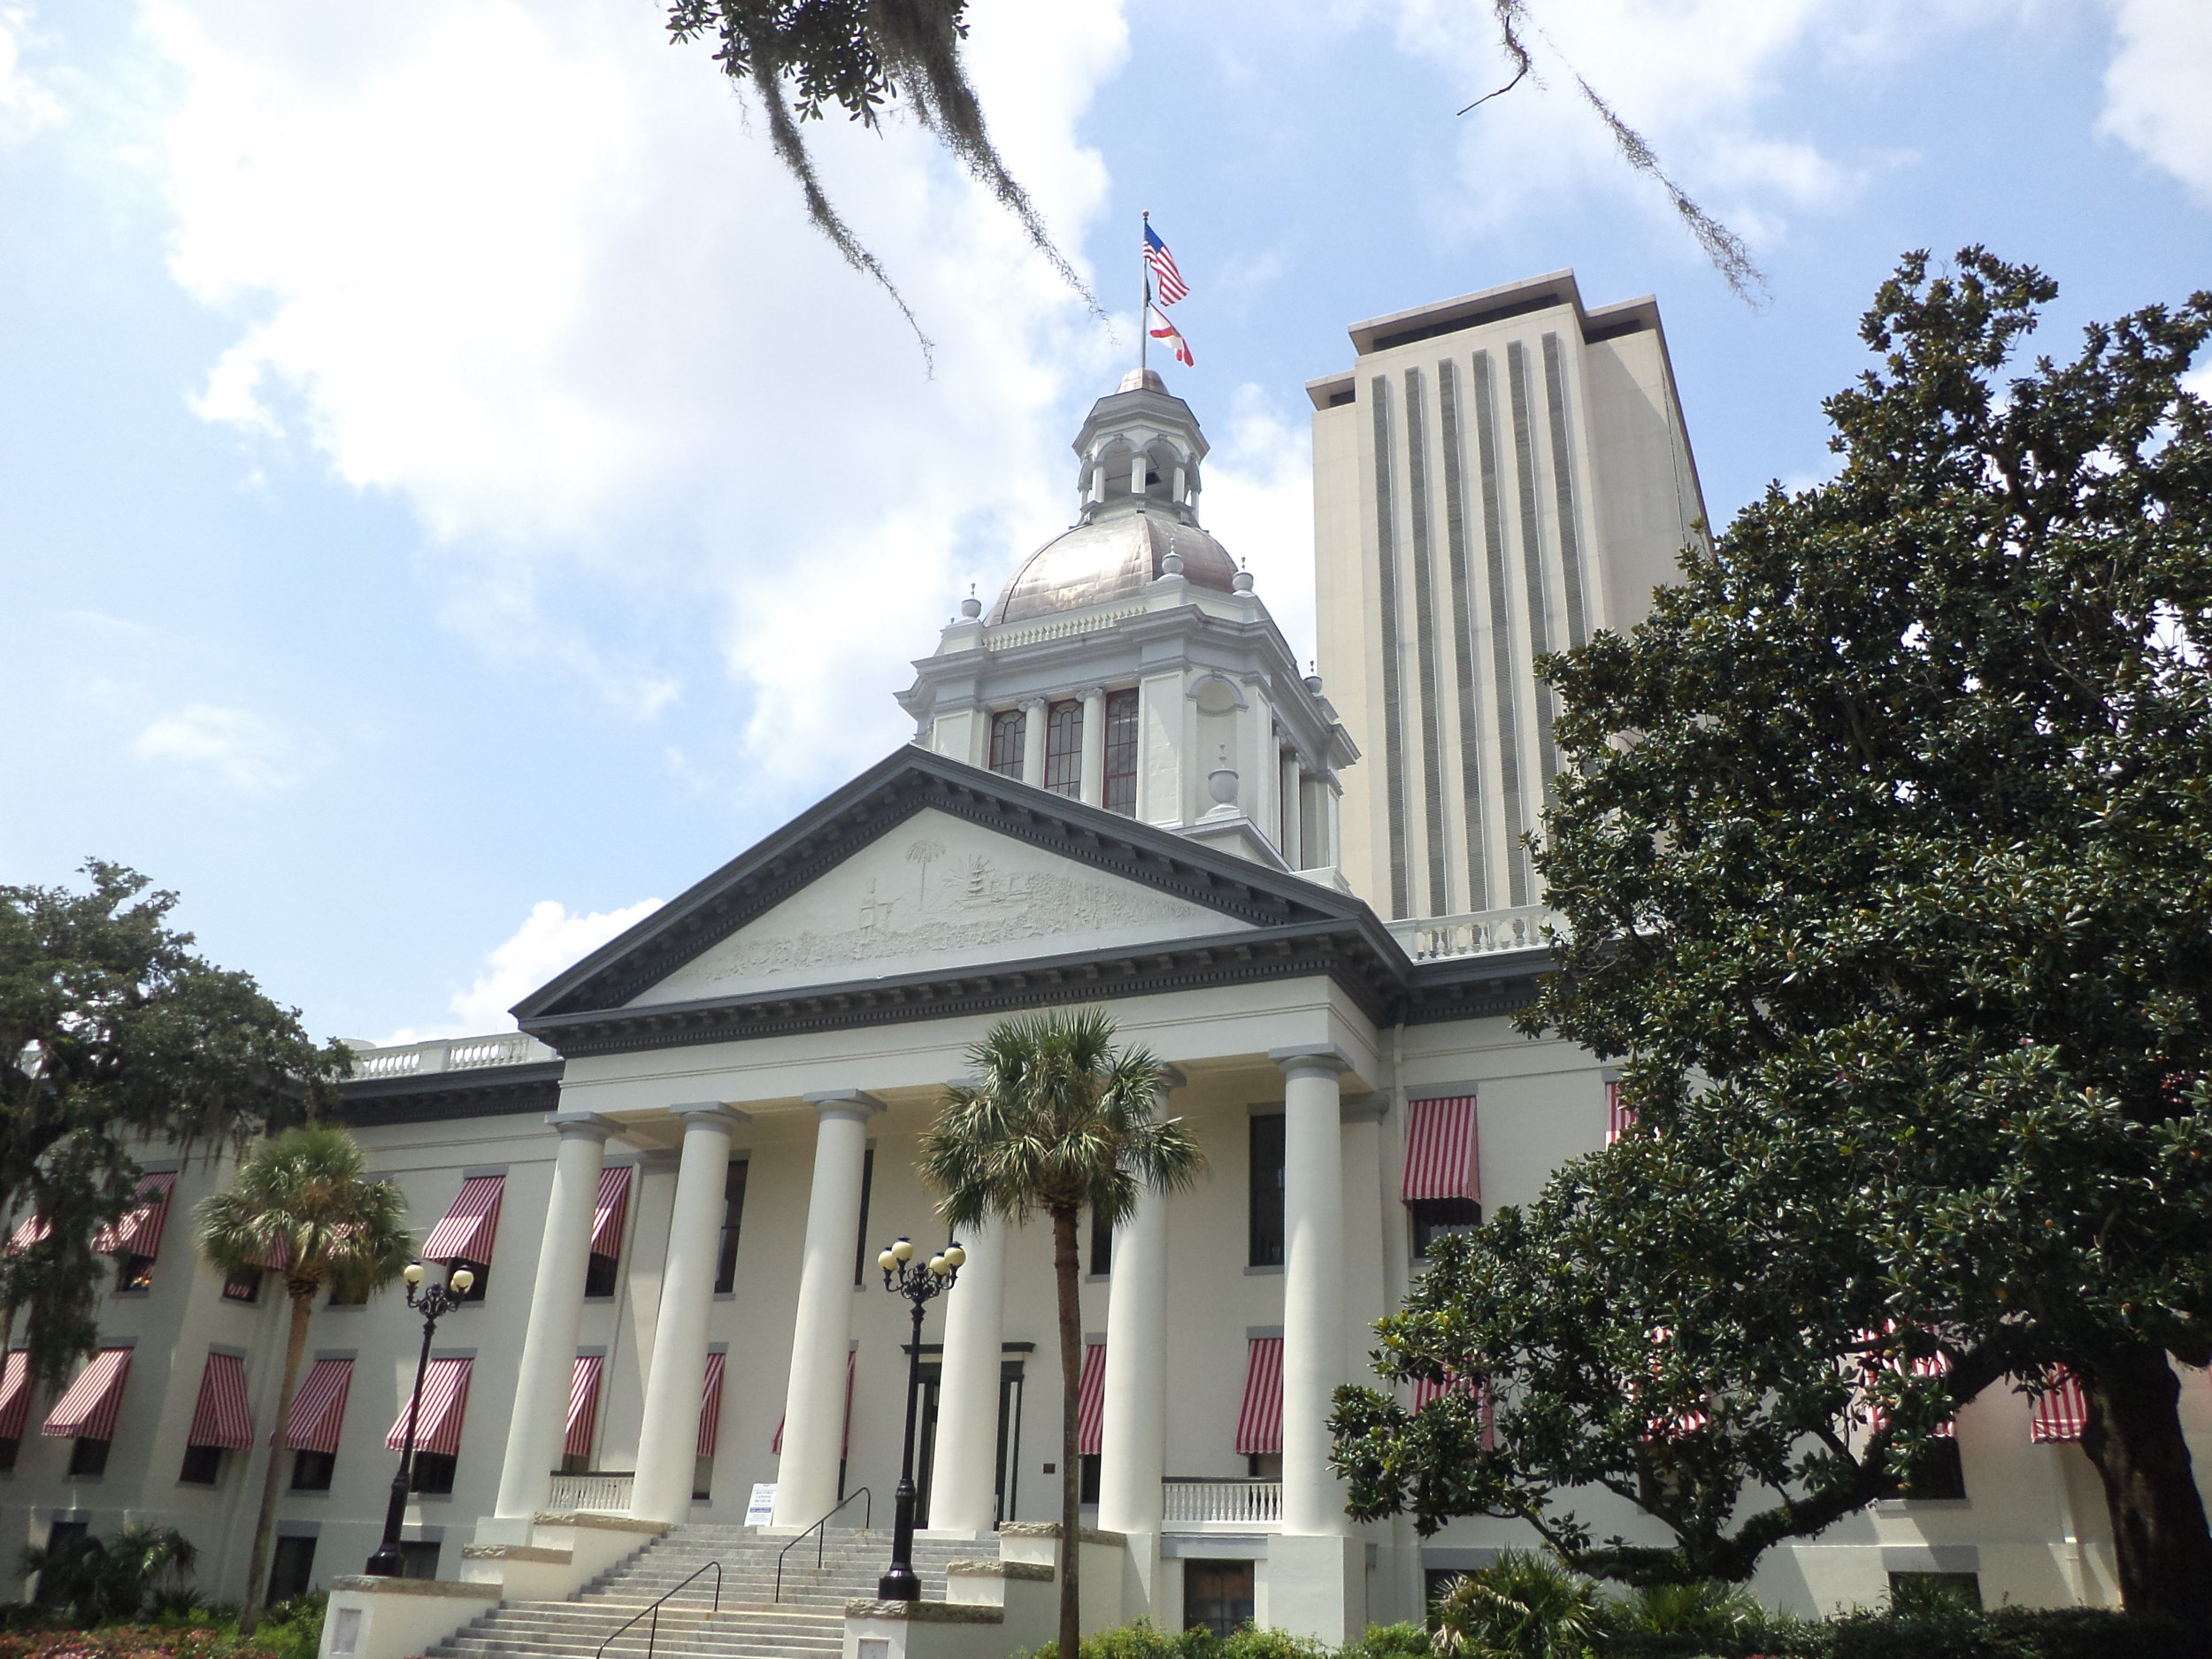 Florida's_Historic_Capitol_and_Florida_State_Capitol_2.JPG